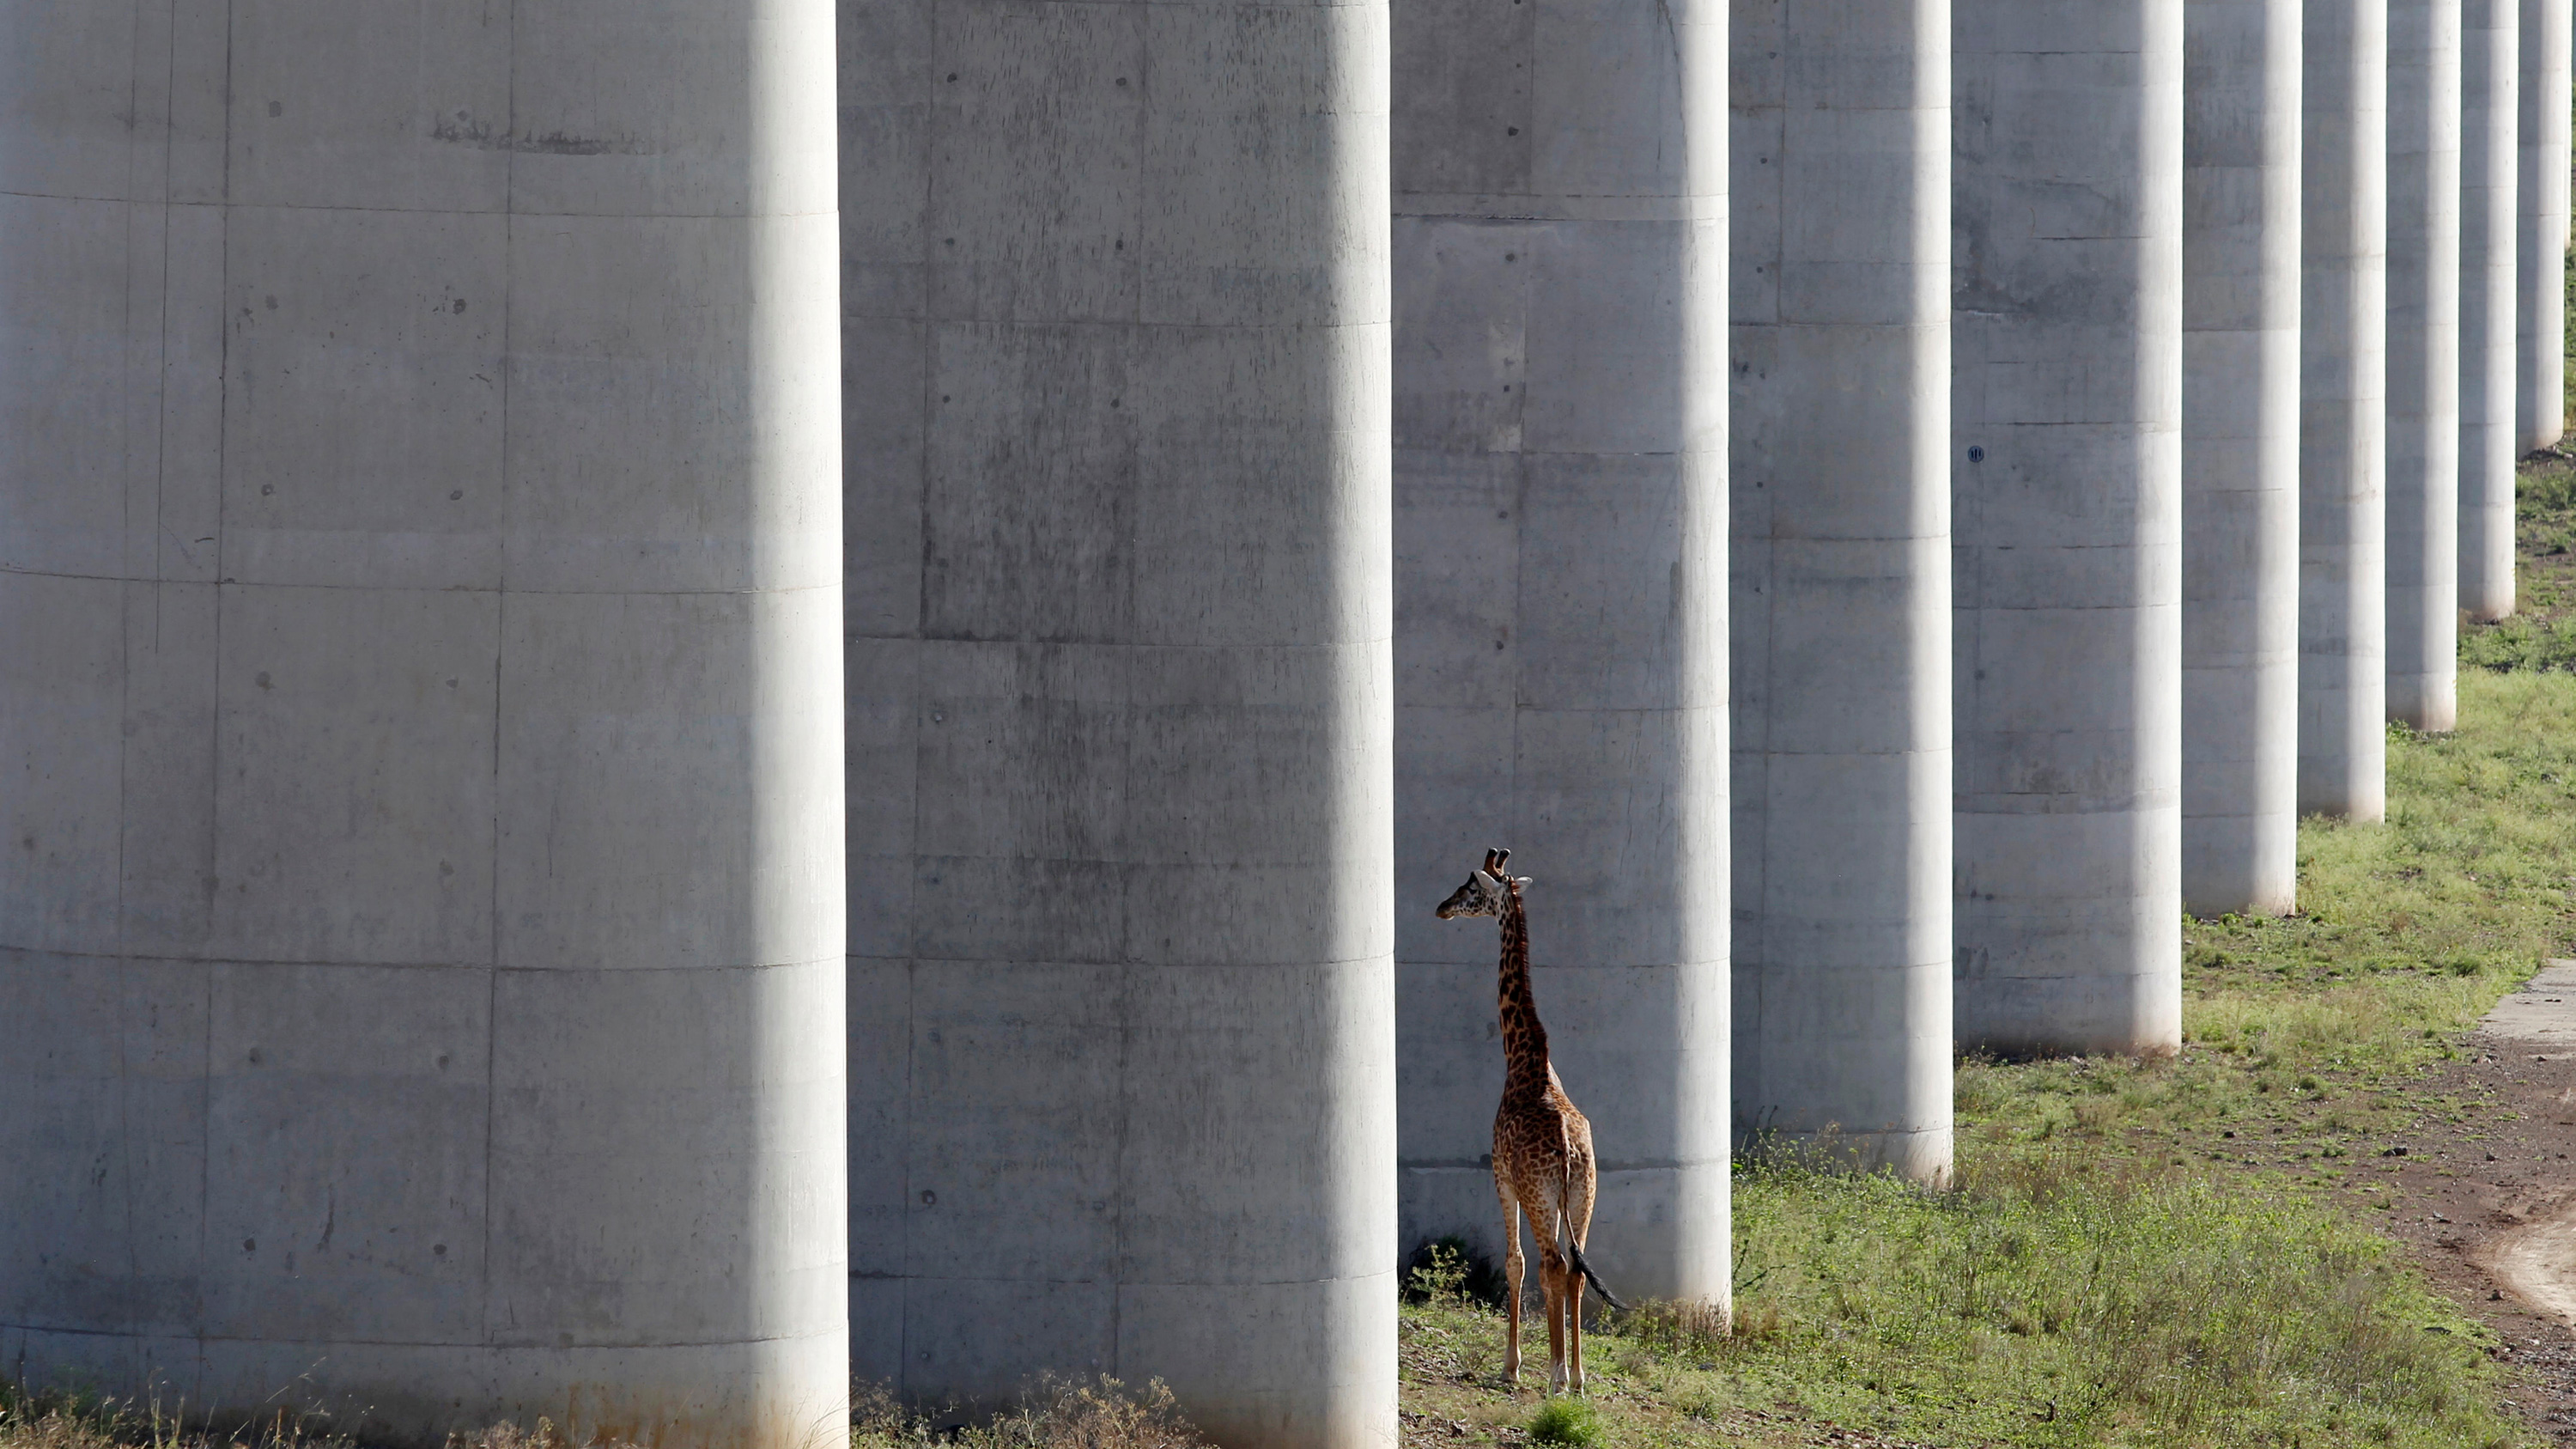 Photo shows a high bridge constructed in such a way that animals can pass freely beneath its support structure.